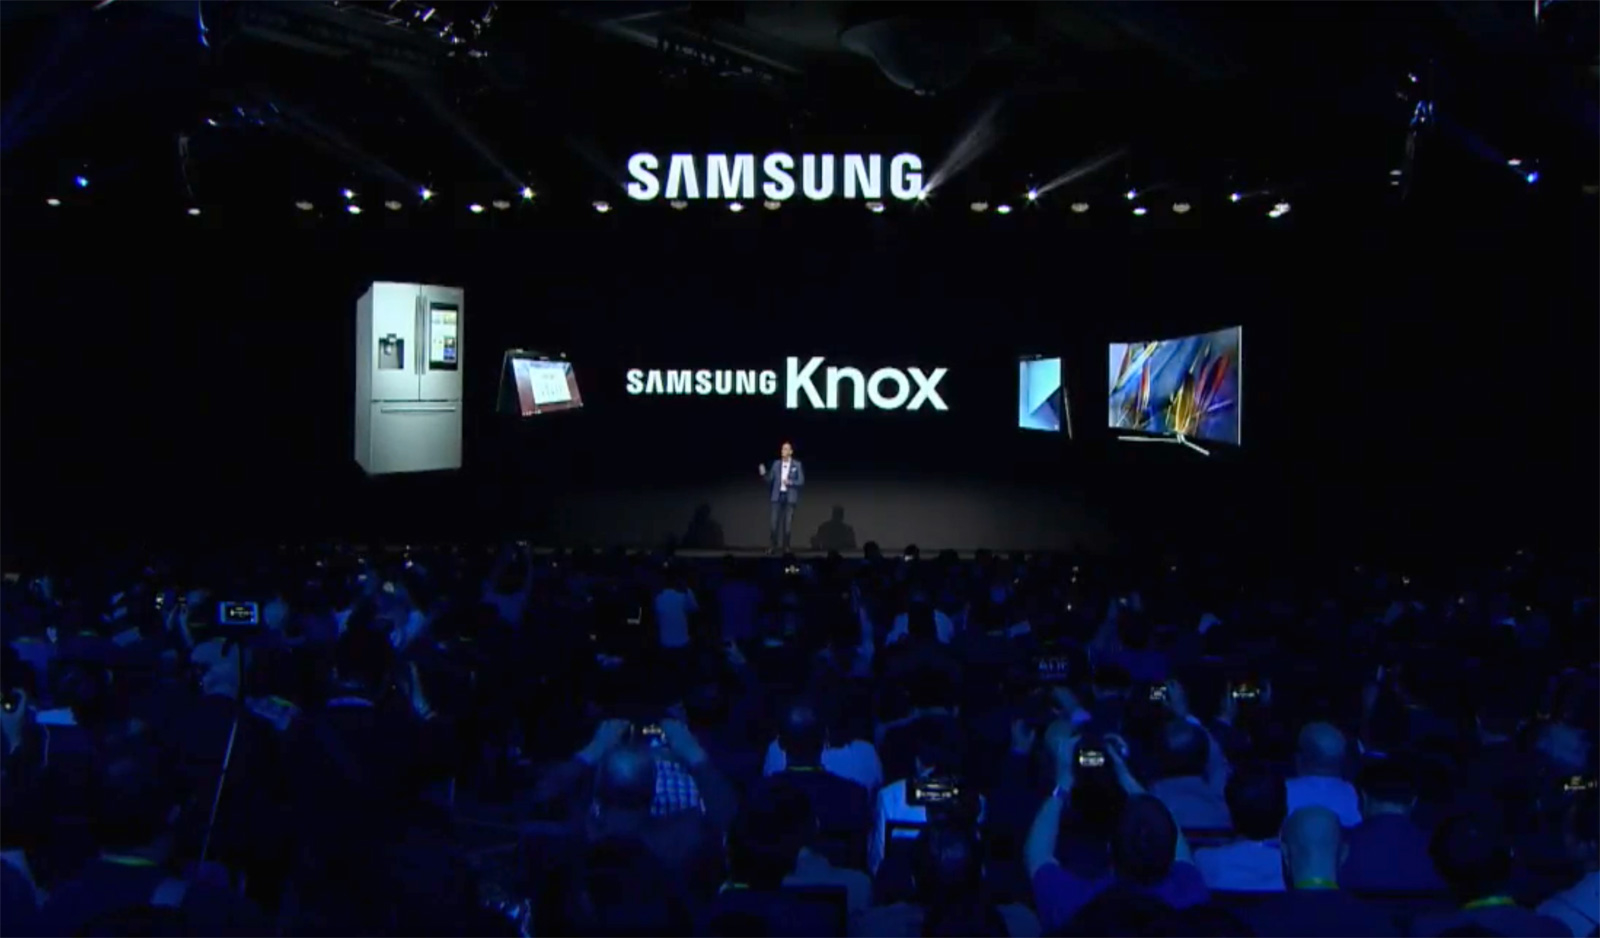 Samsung brings Knox security to smart fridges and TVs